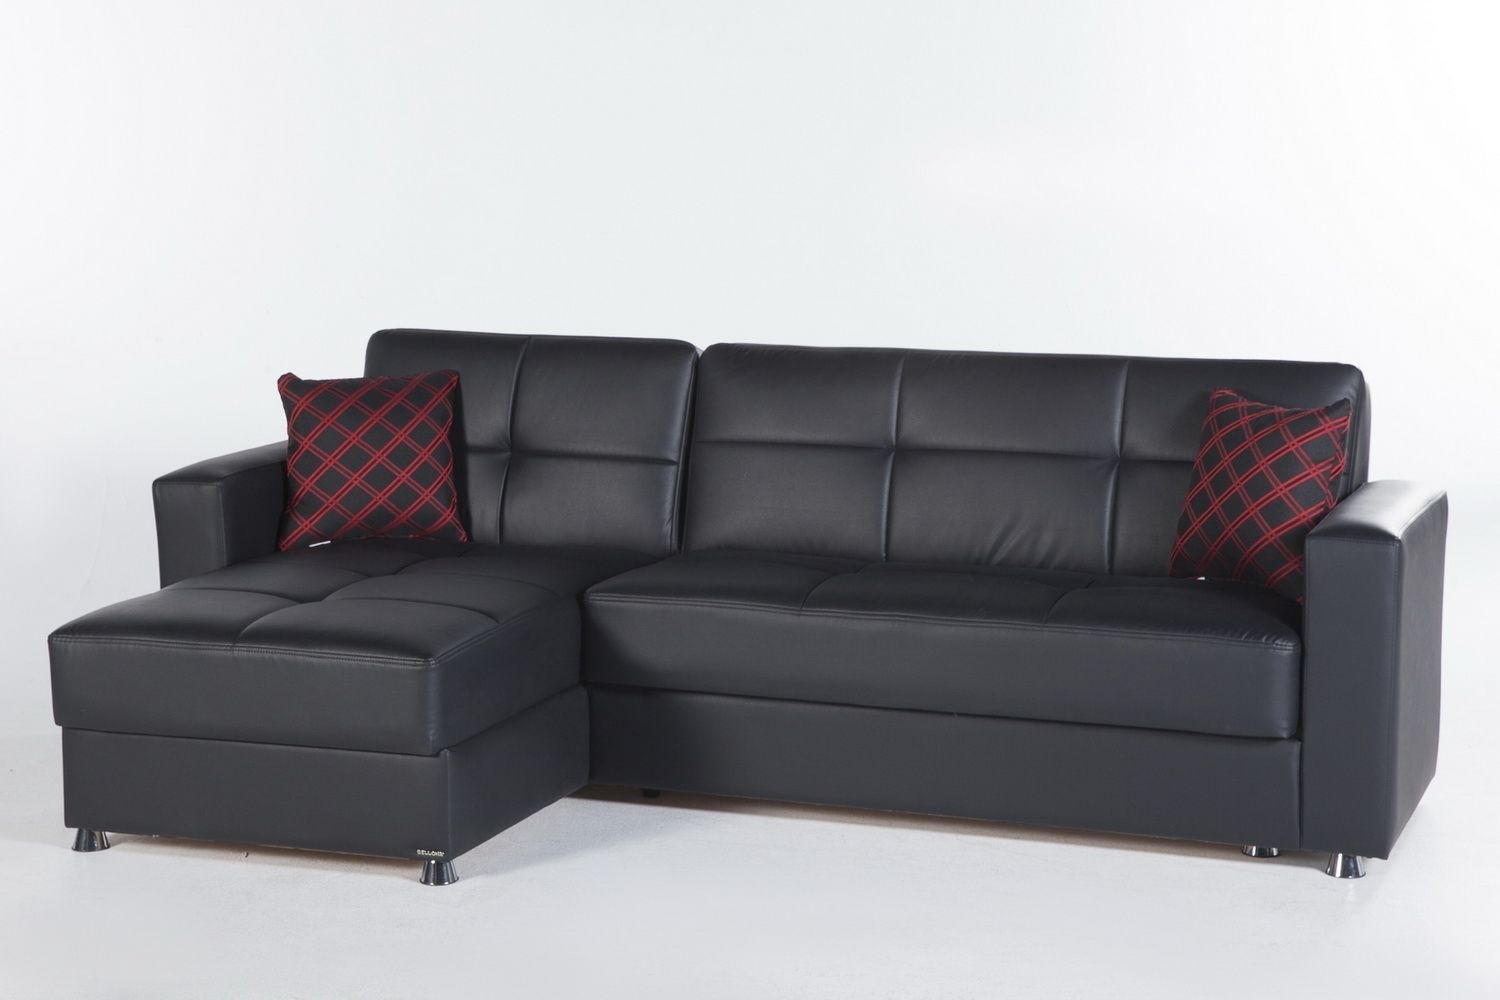 Elegant Sectional Sofa In Santa Glory Blackistikbal | Sectional Within Mcculla Sofa Sectionals With Reversible Chaise (Image 8 of 25)